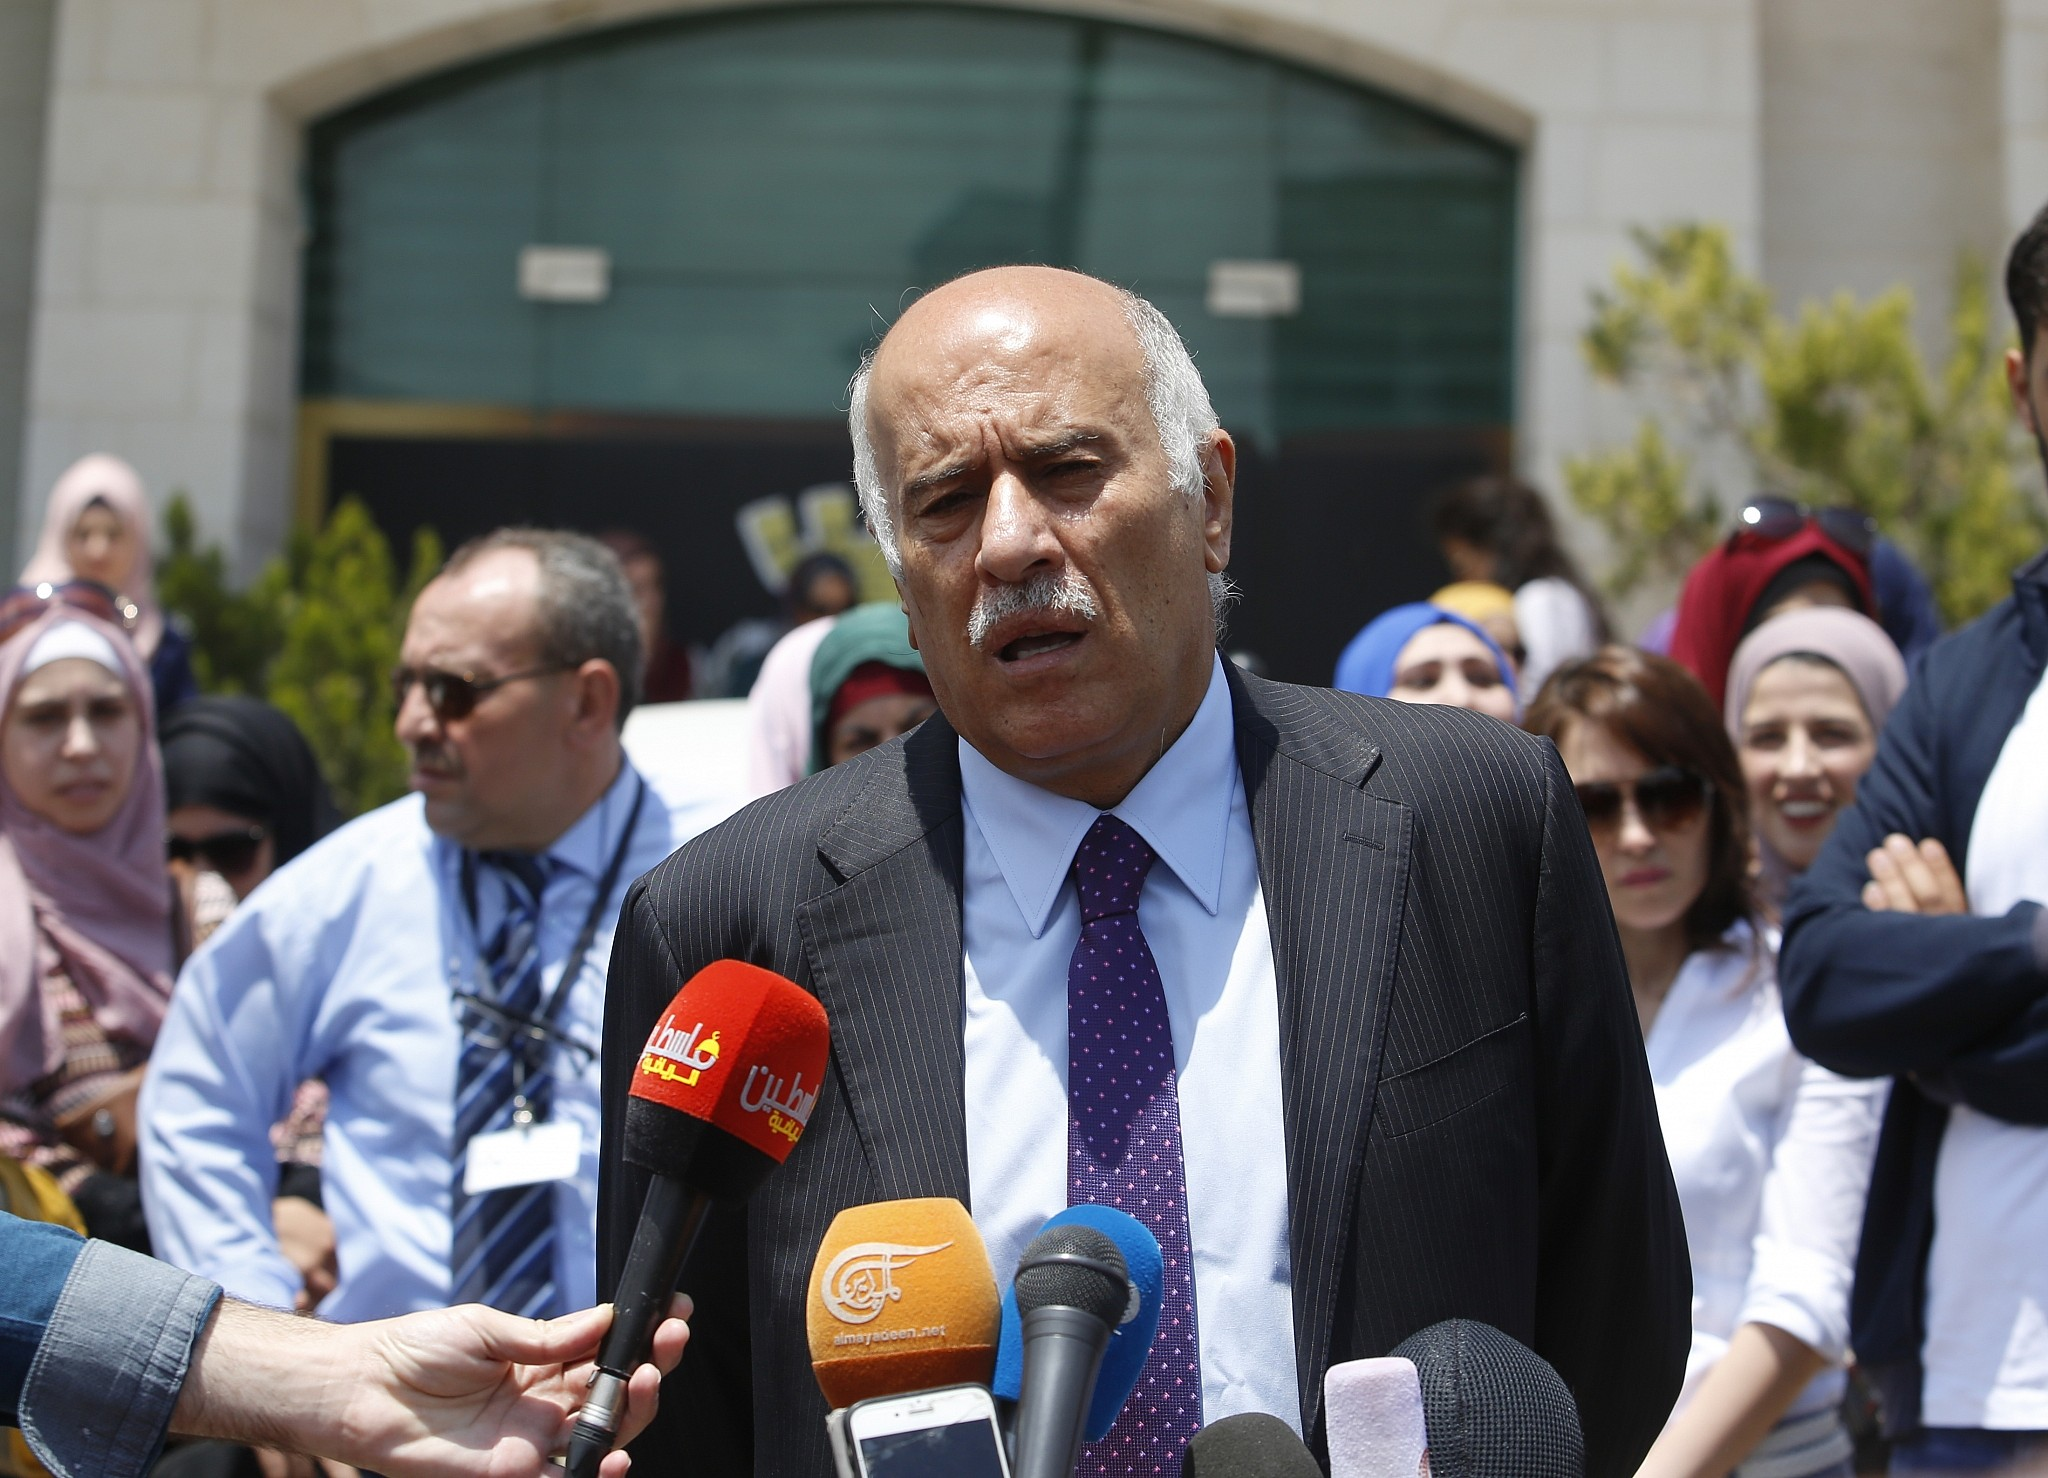 6a55a2e762c Head of the Palestinian Football Association Jibril Rajoub speaks during a  press conference in front of